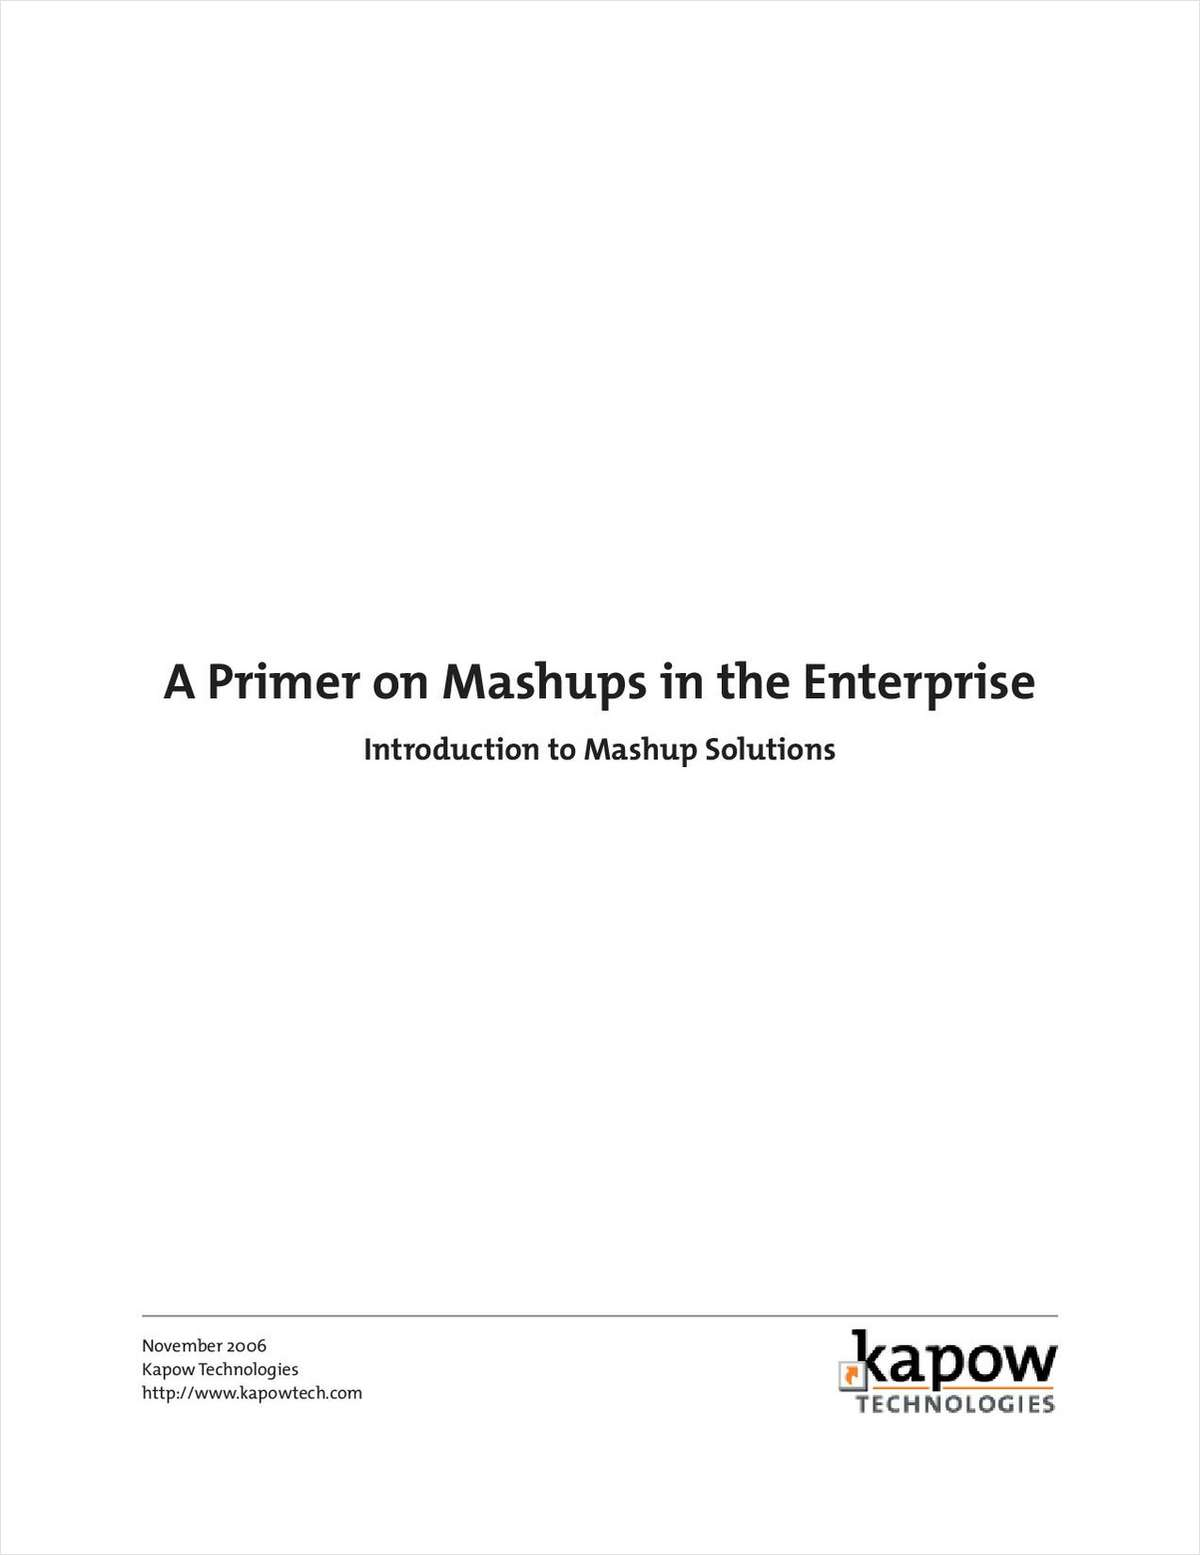 Intro to Mashups: Application and Service Integration Made Easy